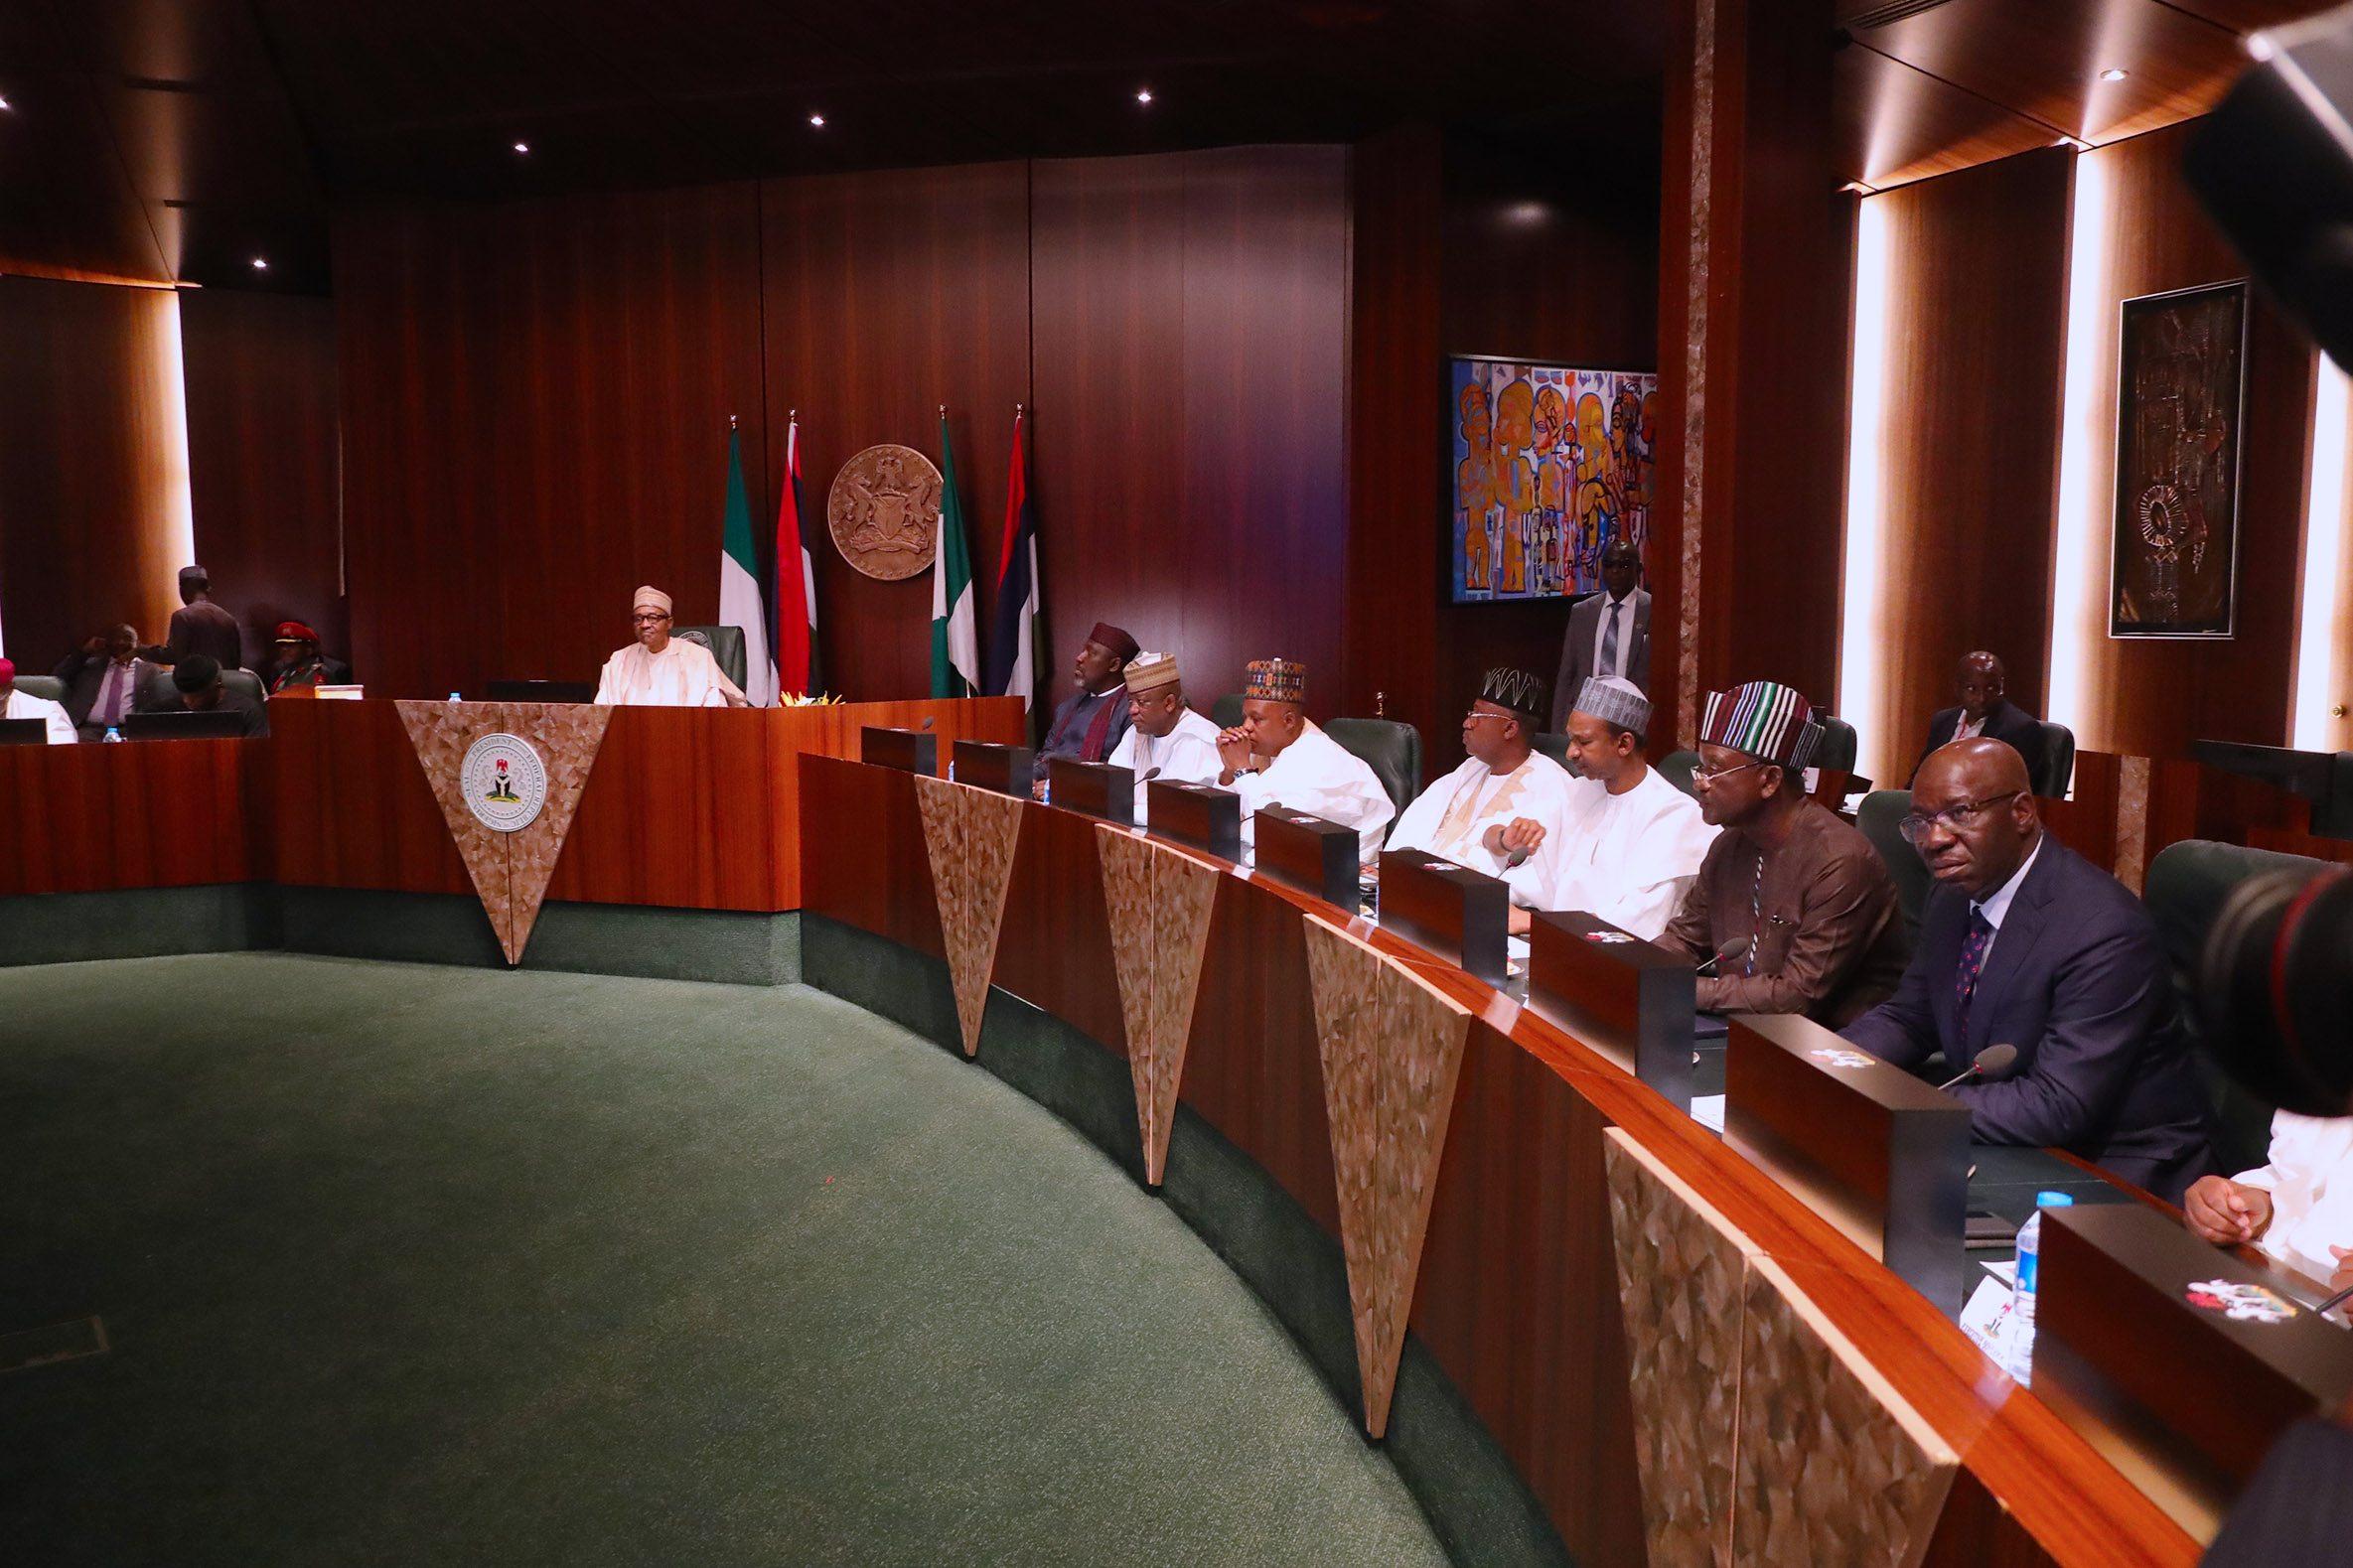 Tenure elongation: Buhari's meeting with APC governors ends in a deadlock